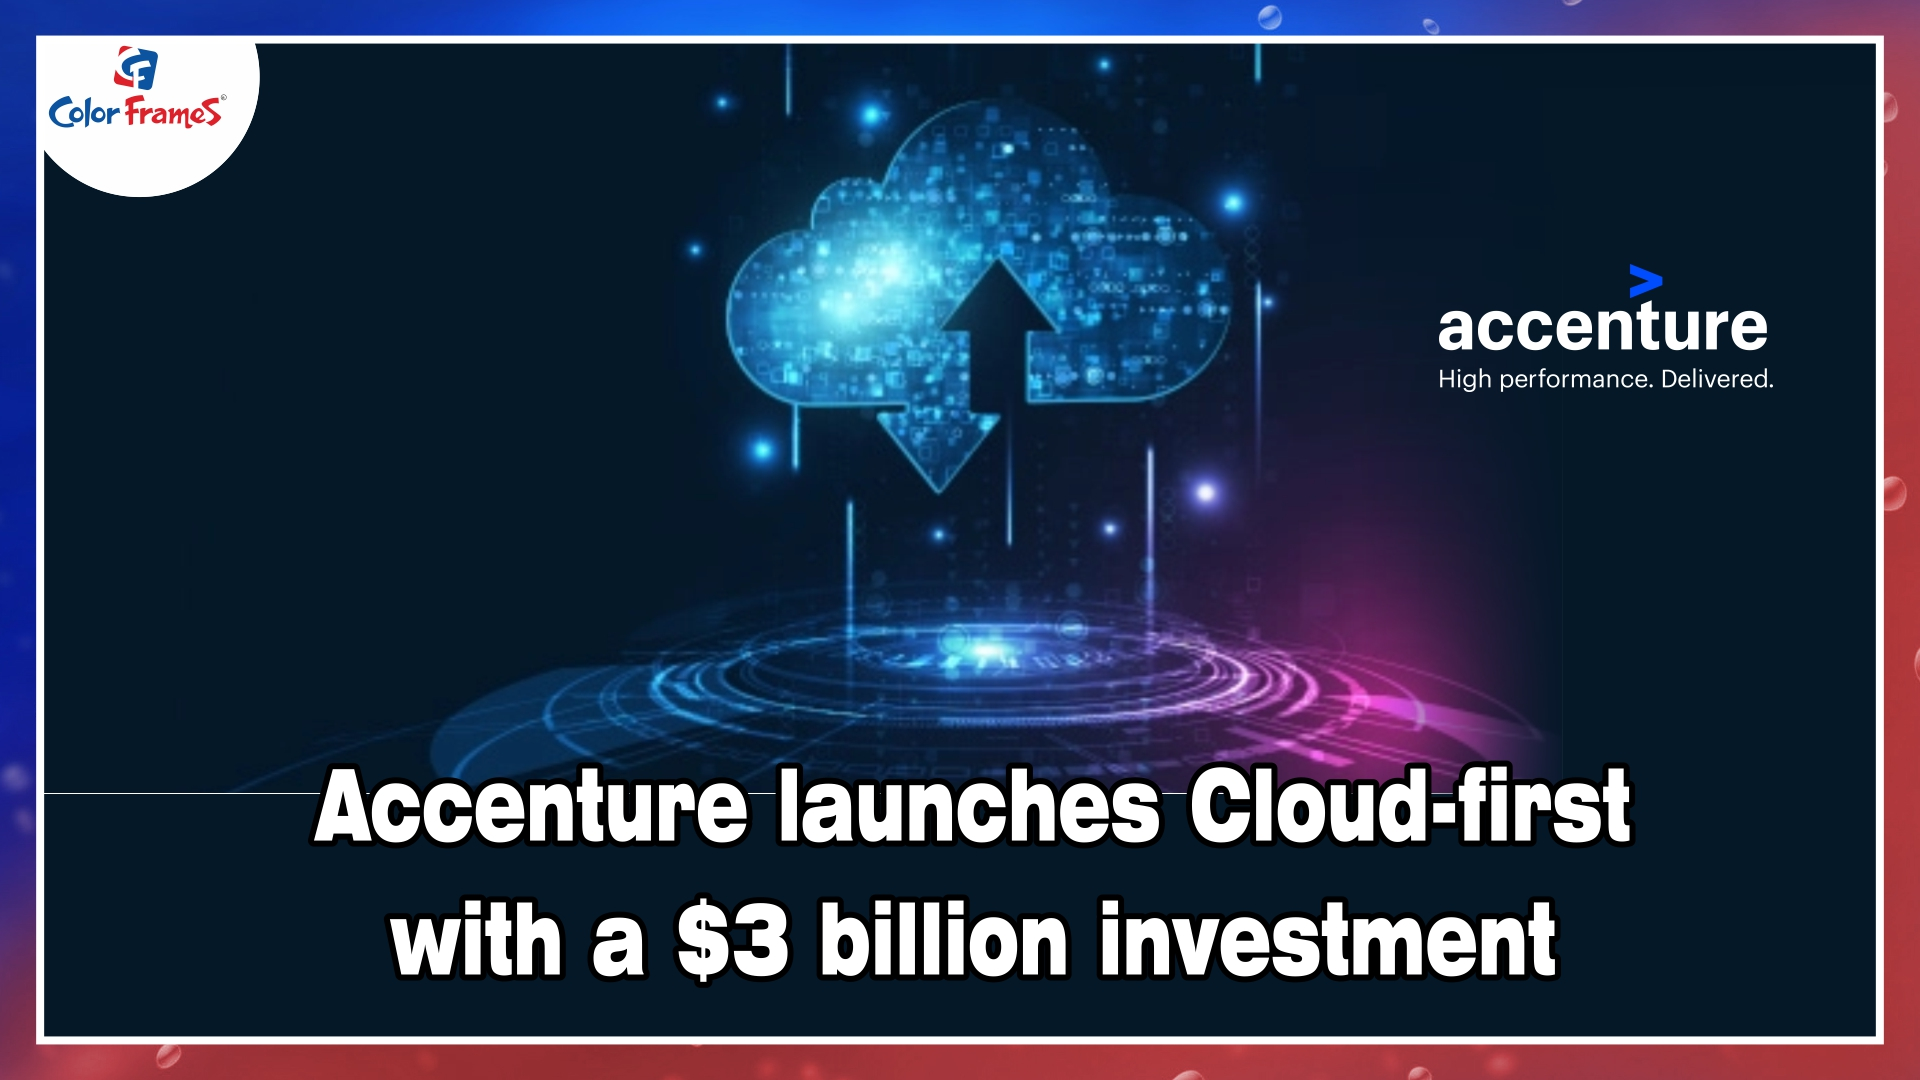 Accenture launches Cloud-first with a $3 billion investment in digital transformation for its clients.